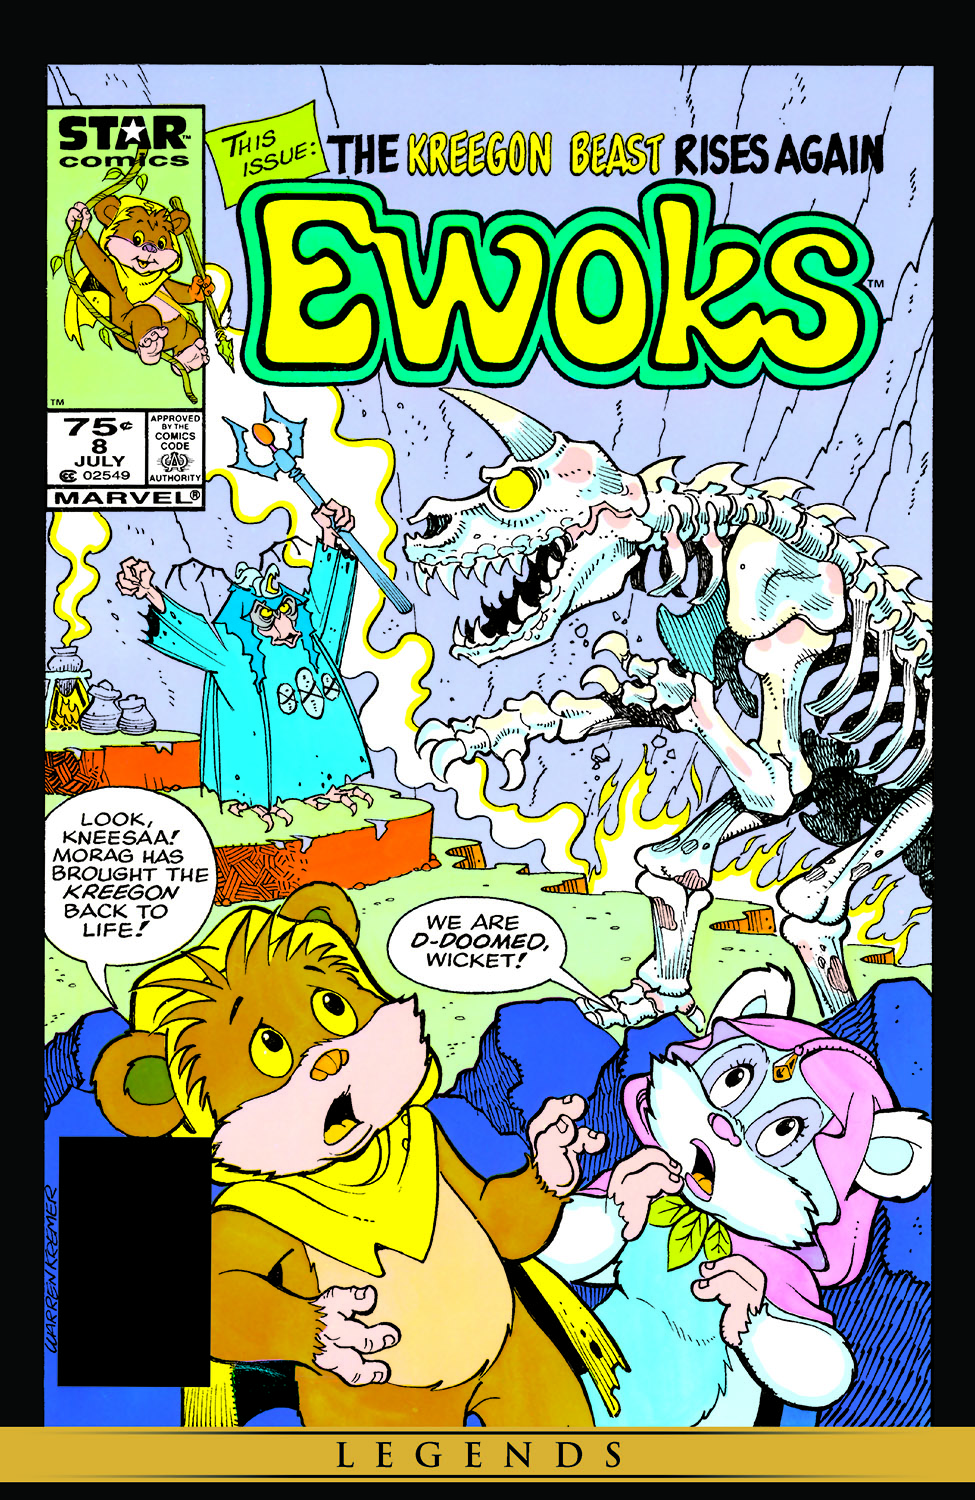 Star Wars: Ewoks (1985) #8